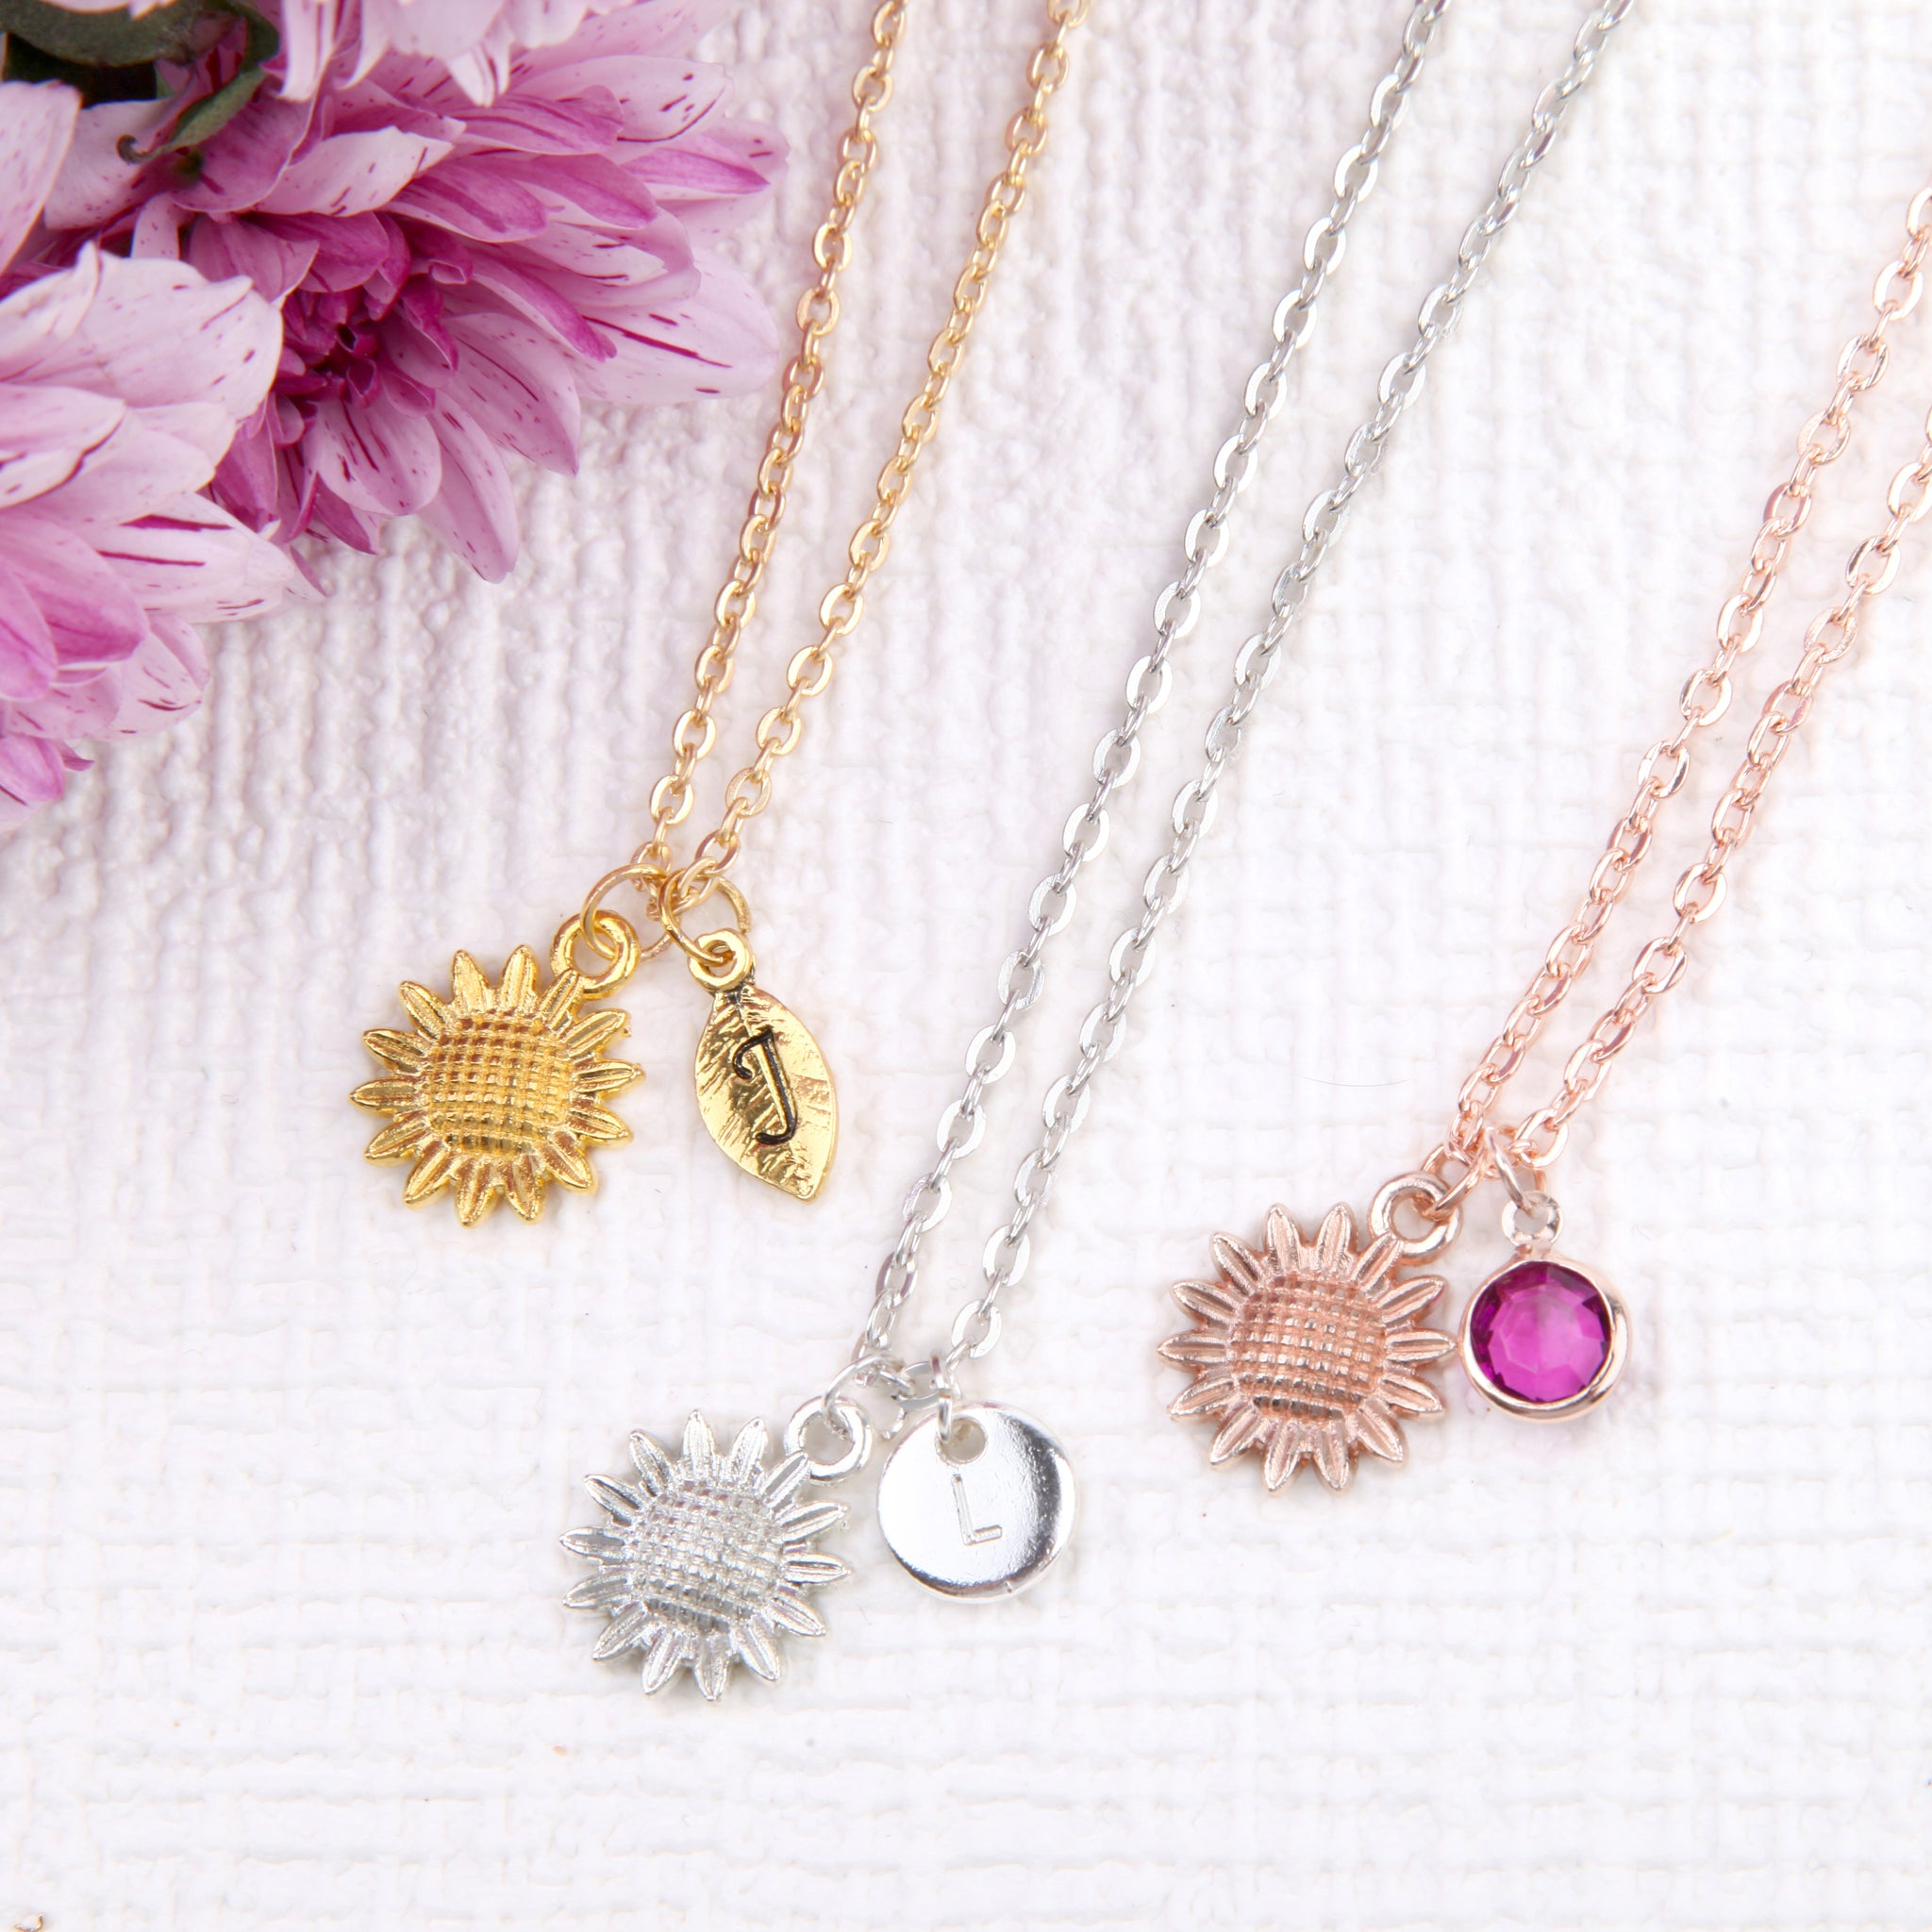 Rose gold, Gold and Silver sunflower necklace daisy pendant, personalised sunflower jewelry uk - Statement Made Jewellery